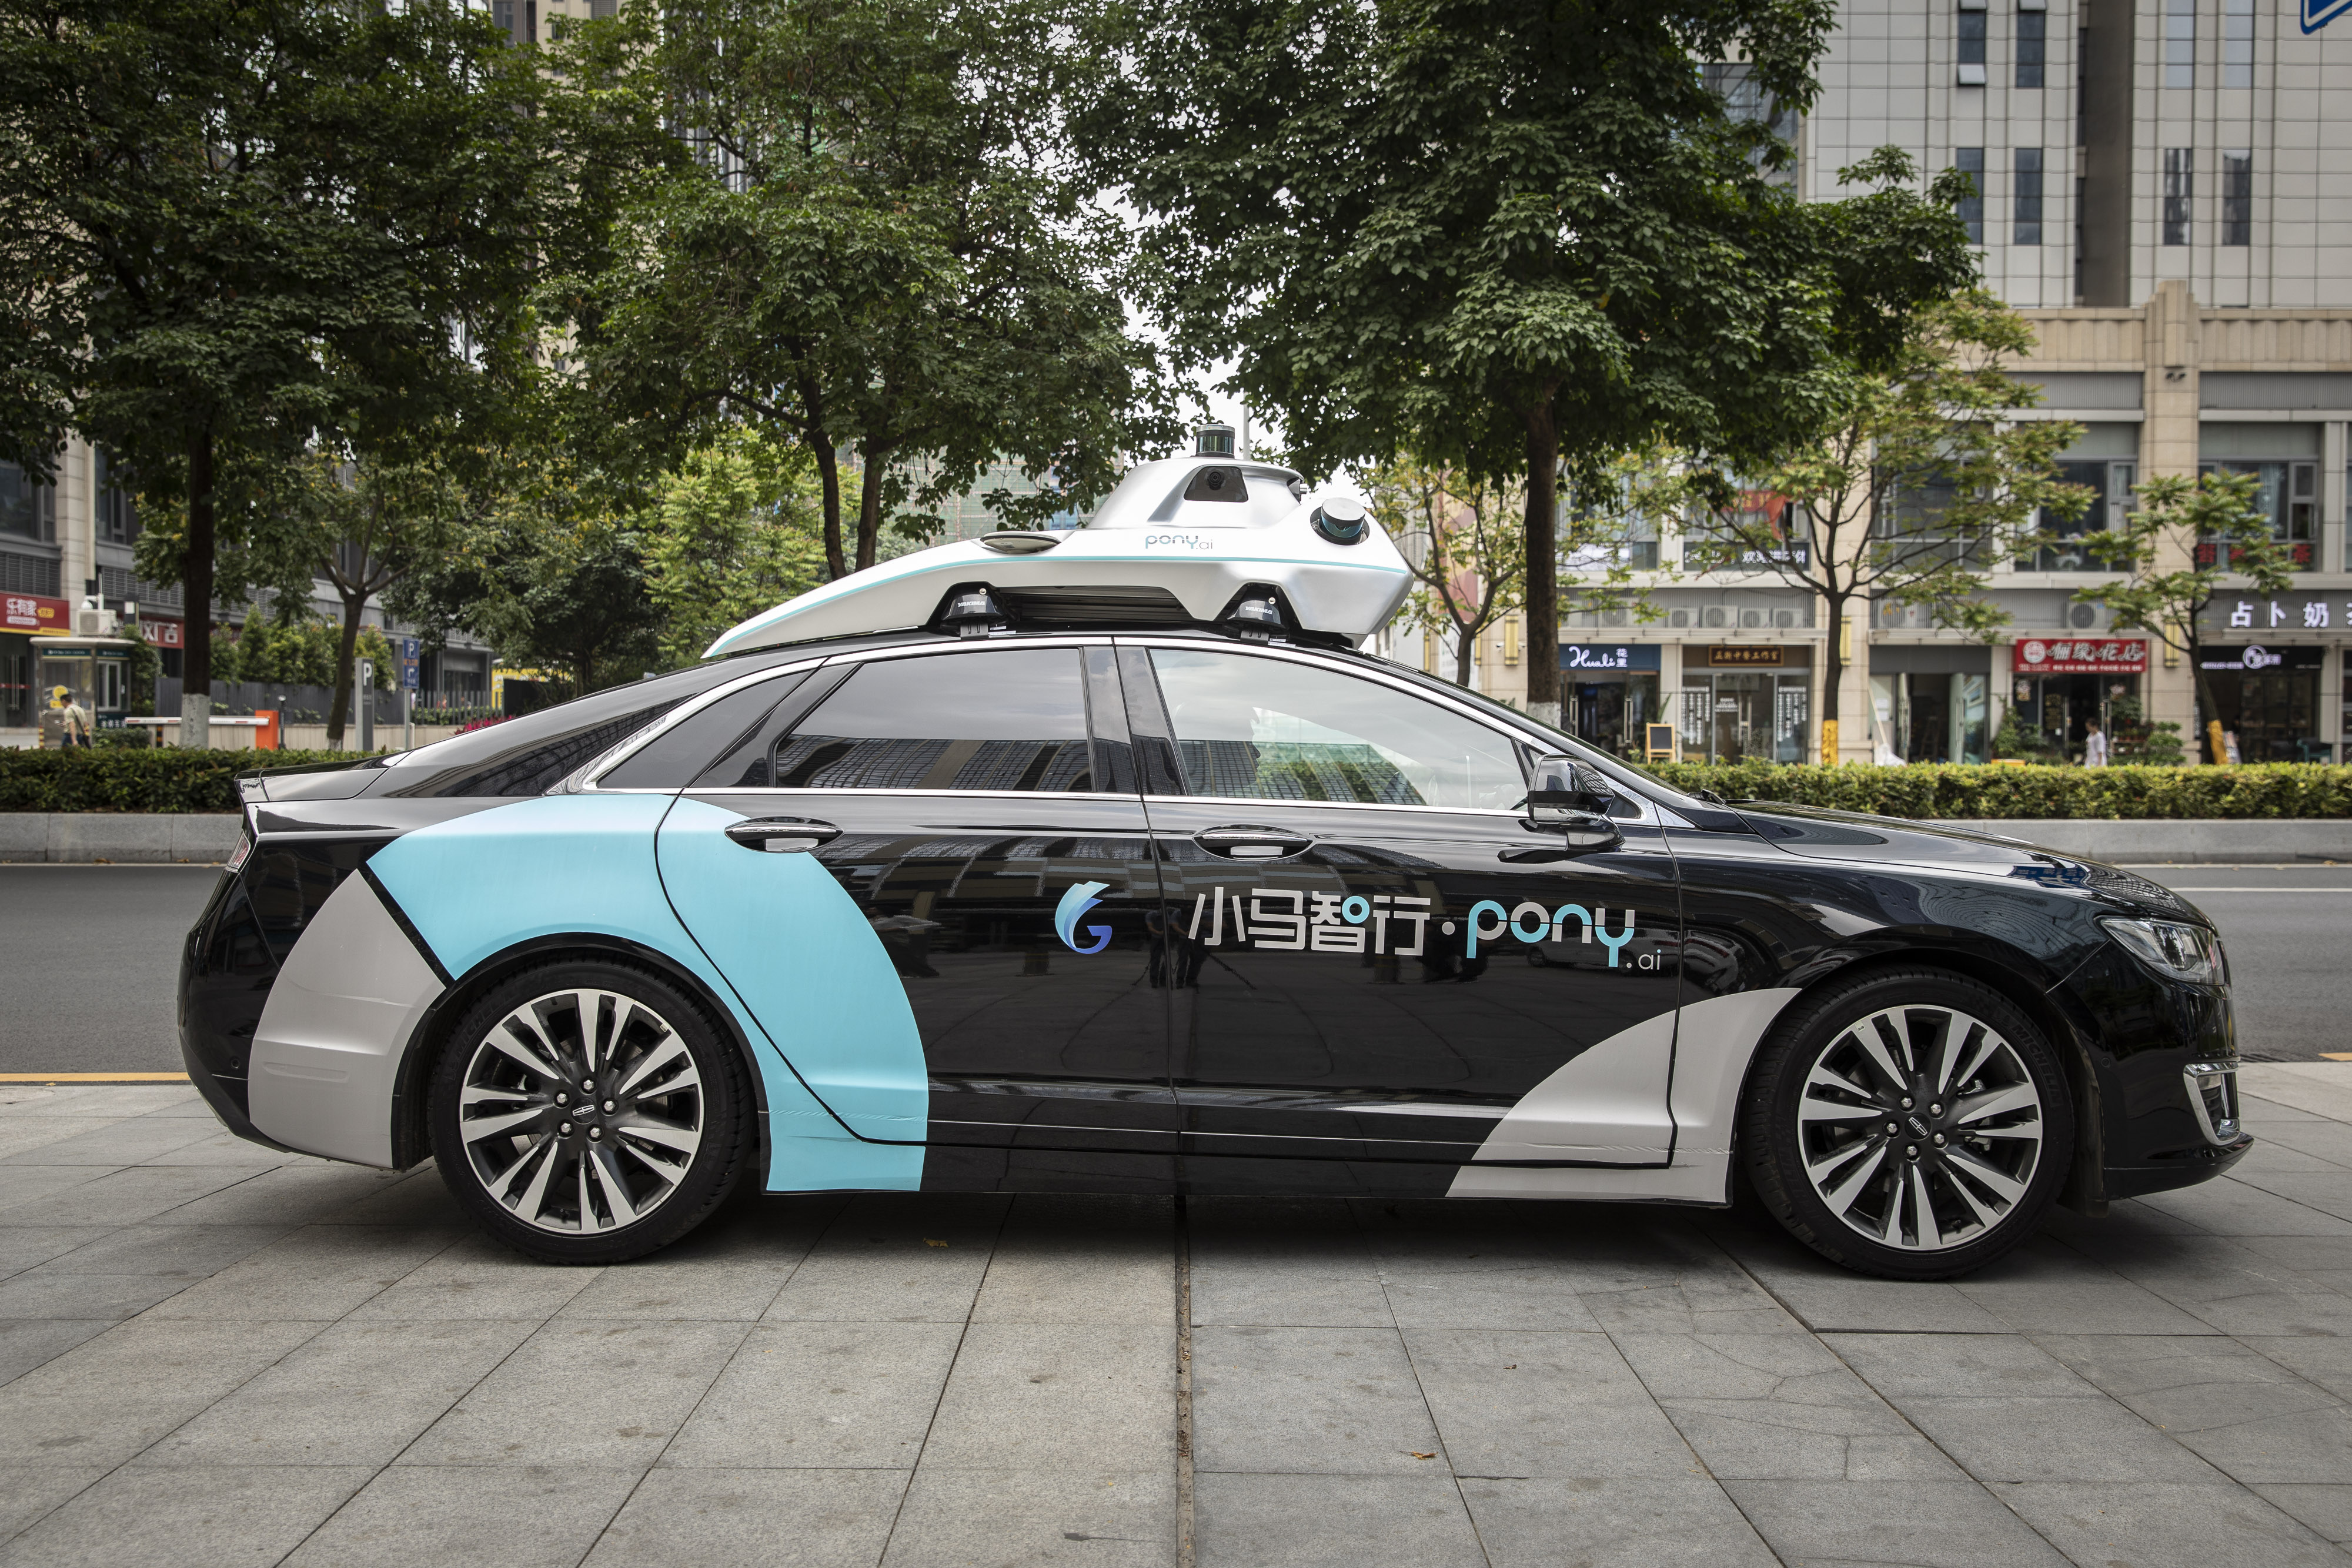 China's Robocars Are Way Behind Their U.S. Counterparts